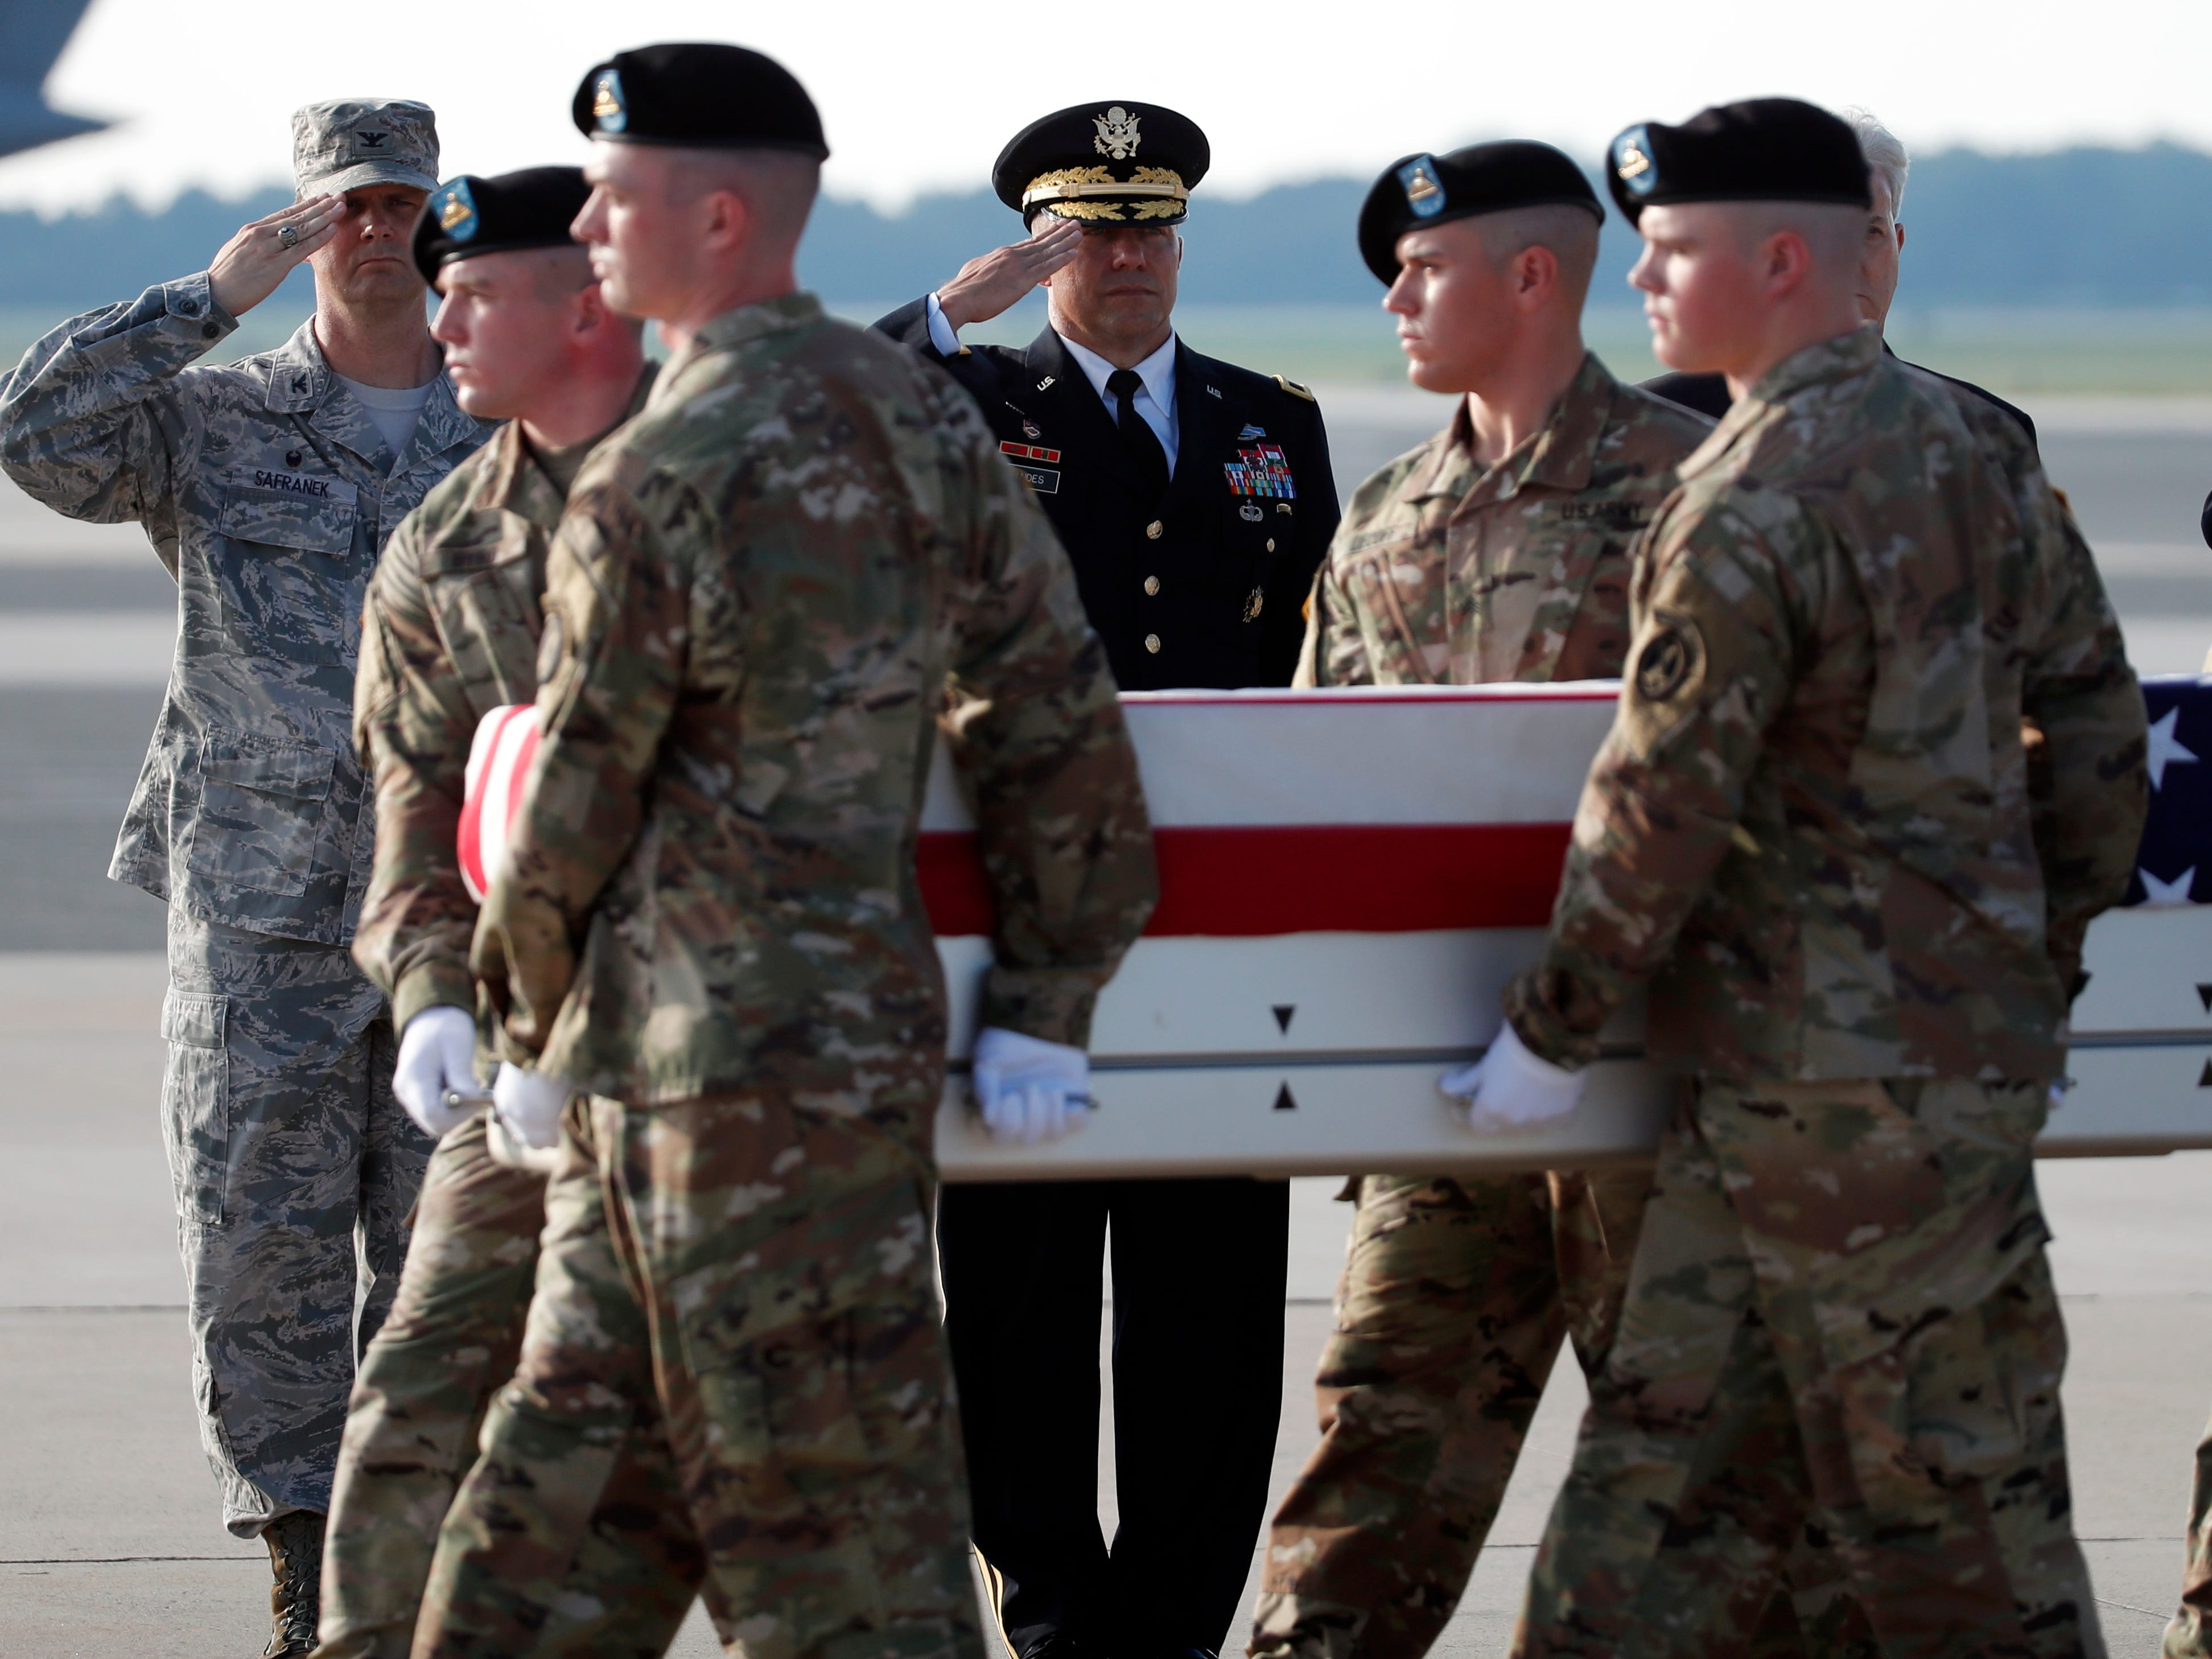 An Army carry team moves a transfer case containing the remains of U.S. Army Staff Sgt. Diobanjo S. San Agustin as Col. Joel W. Safranek, 436th Air Lift Wing Commander, left, and Brig. Gen. Mark Landes, Director of the Security Forces Directorate, salute at Dover Air Force Base.